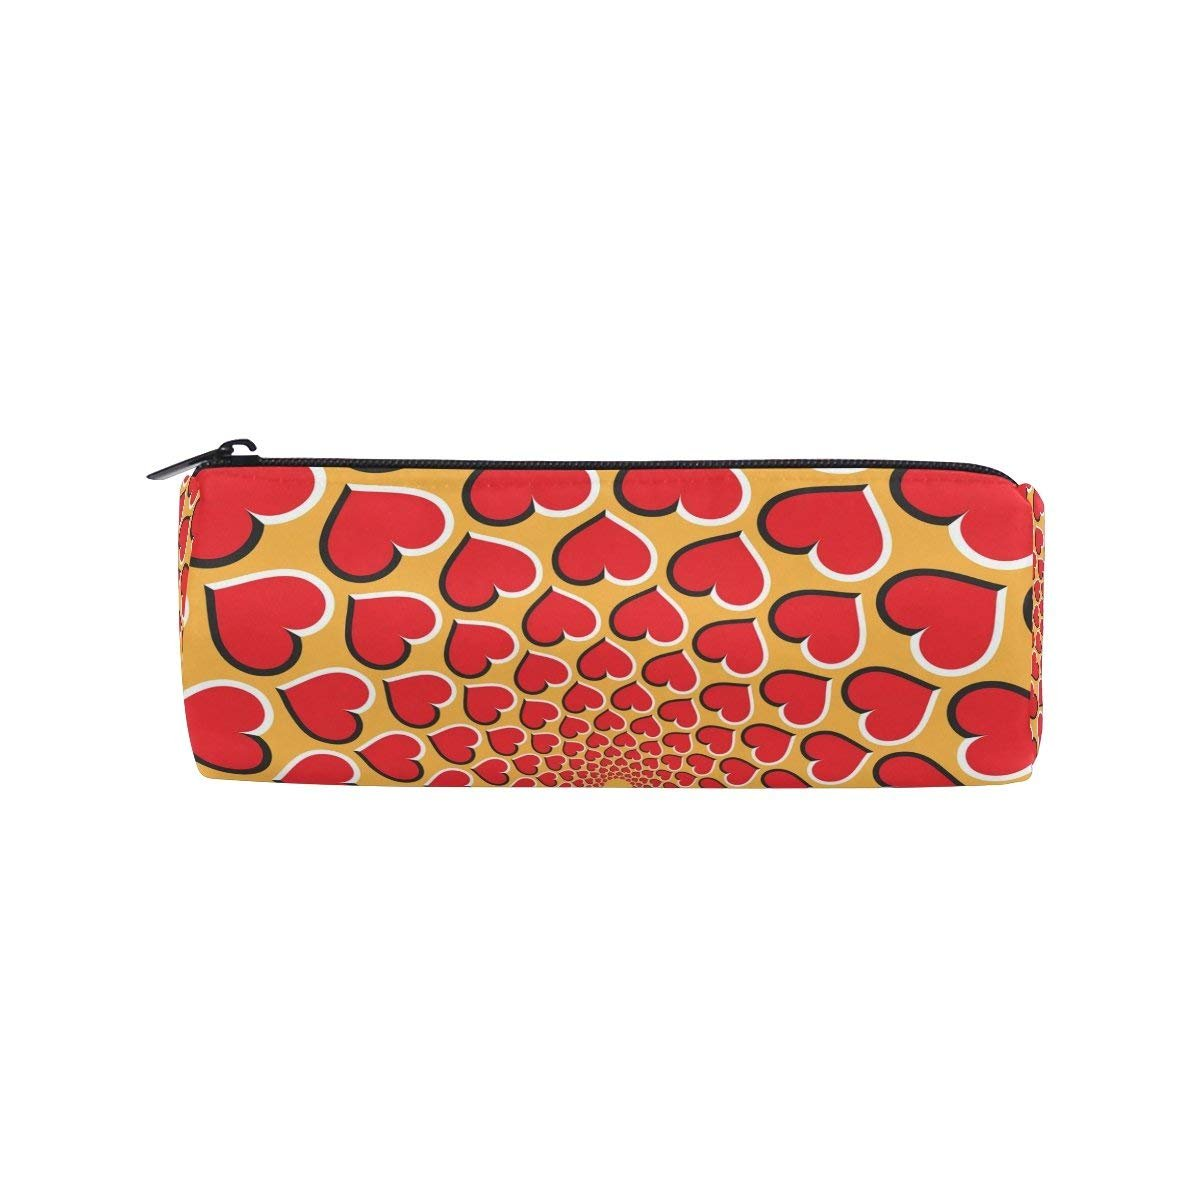 Elephant Love Heart Round Pencil Case Stationery Bag Zipper Pouch Pencil Holder